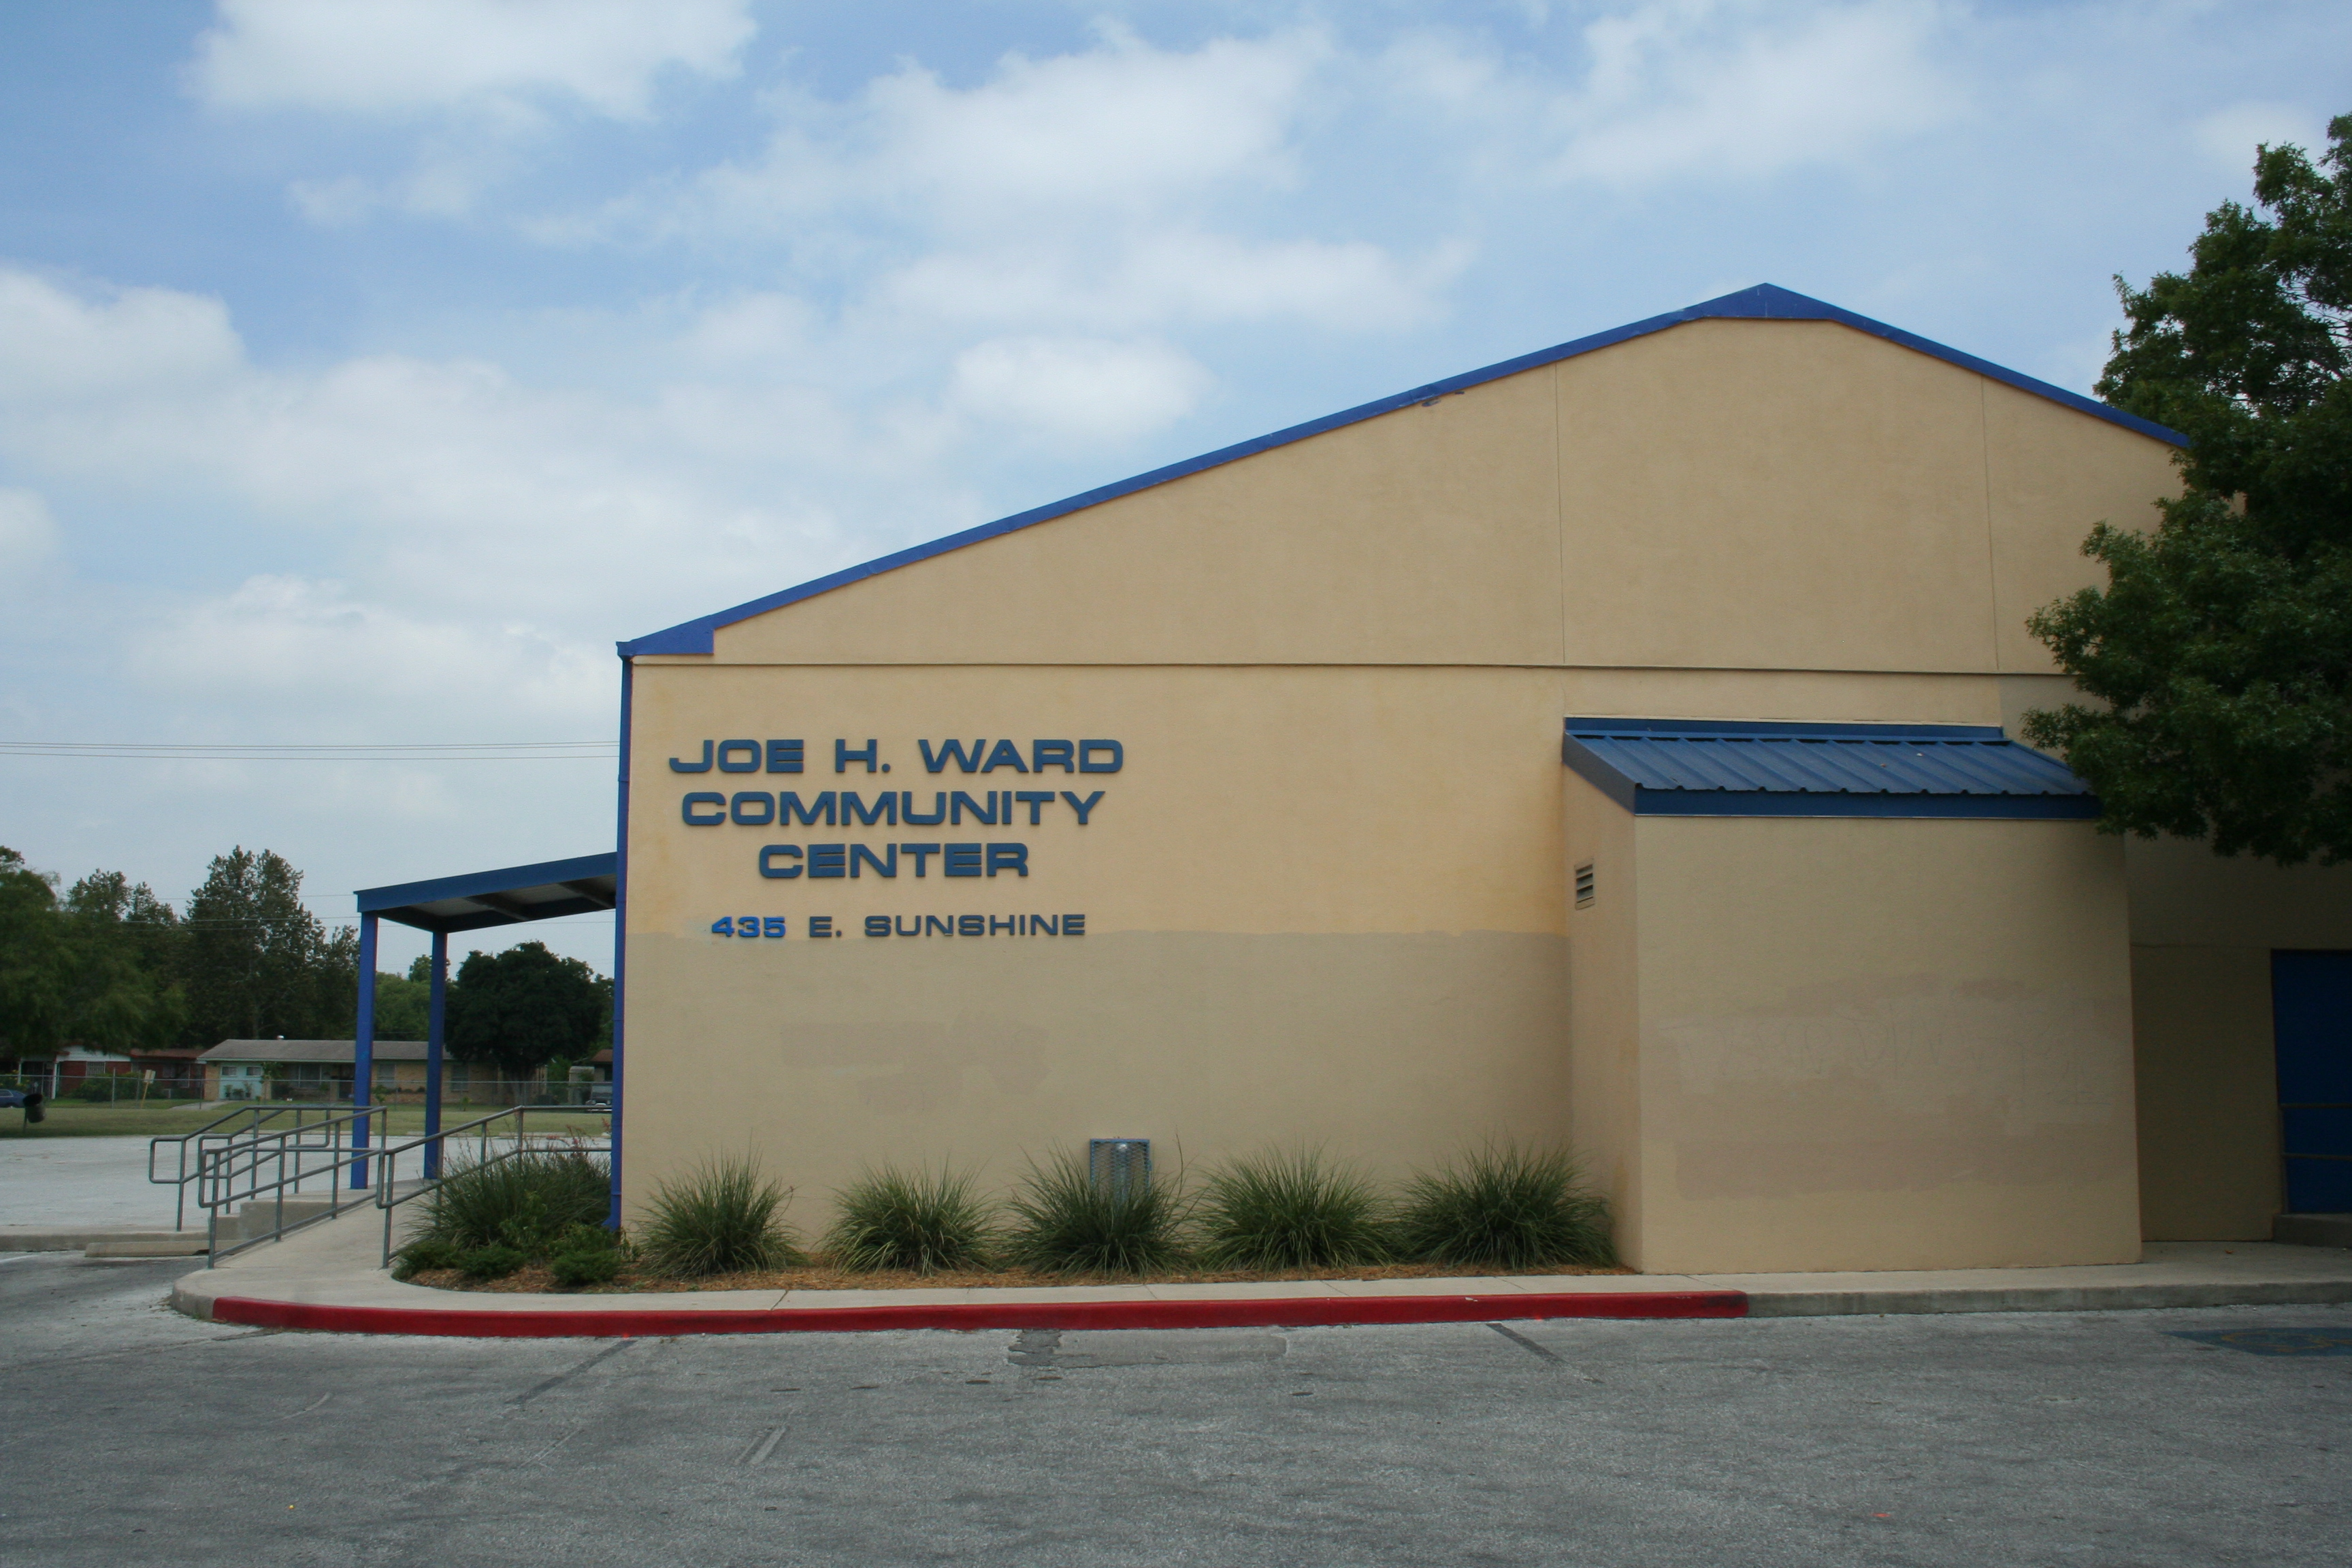 Ward Community Center The City Of San Antonio Official